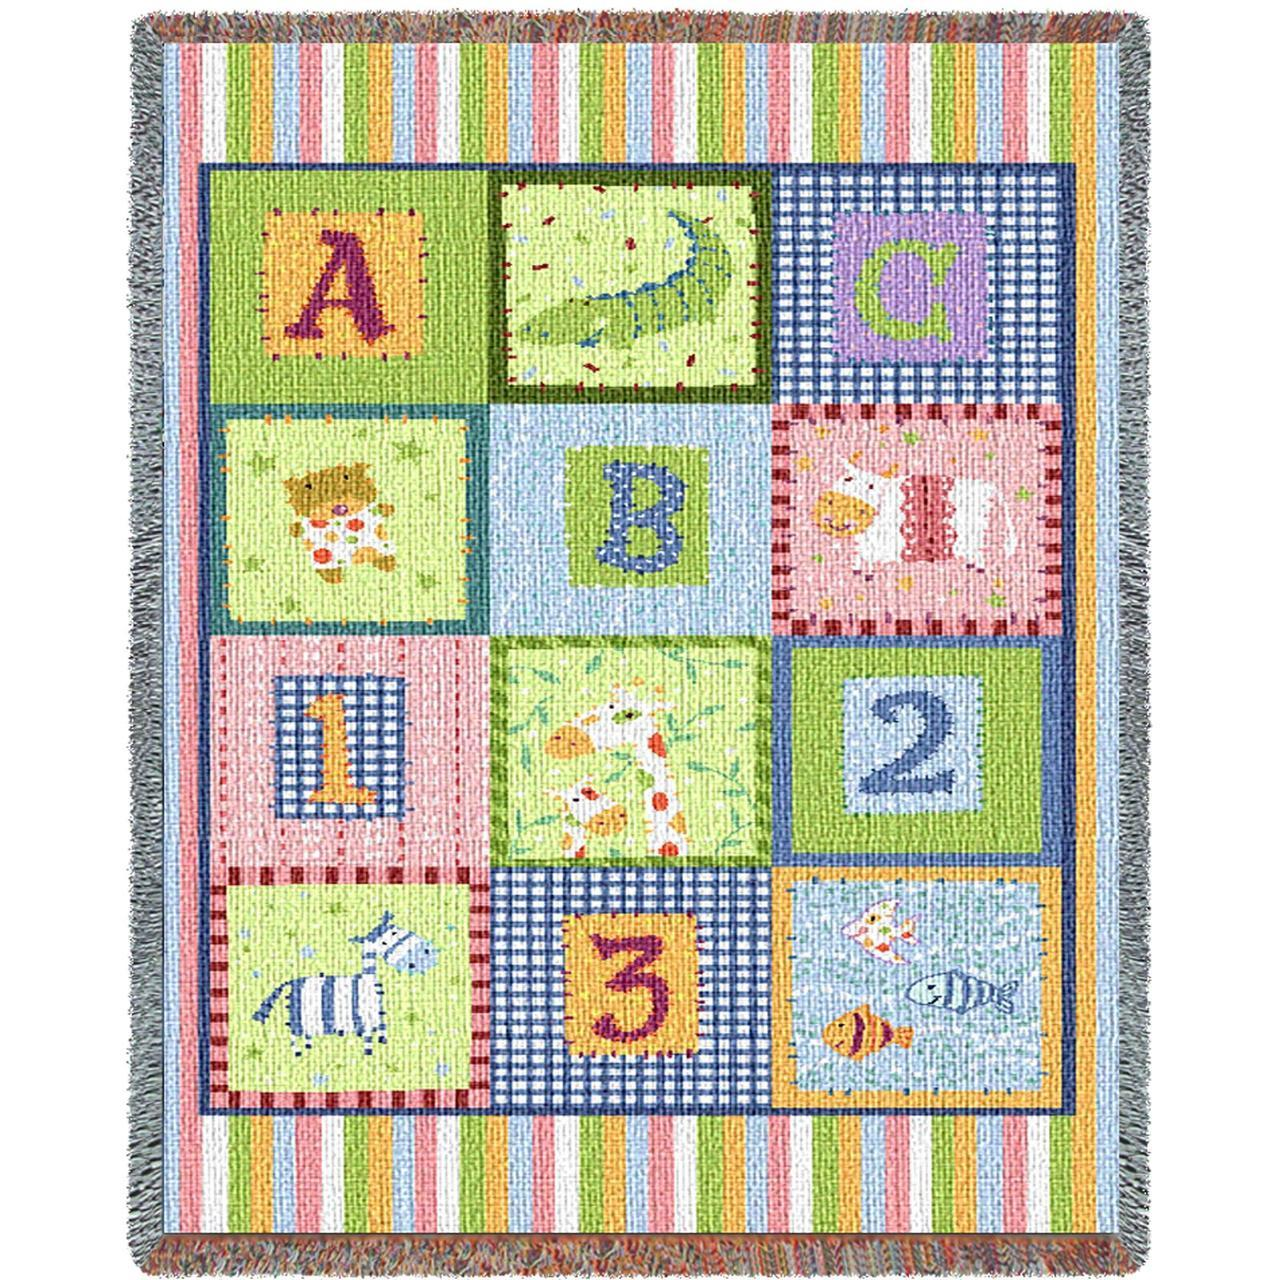 Throw Blanket-34 x 53-Woven Tapestry-Babies-Children-ABC-123